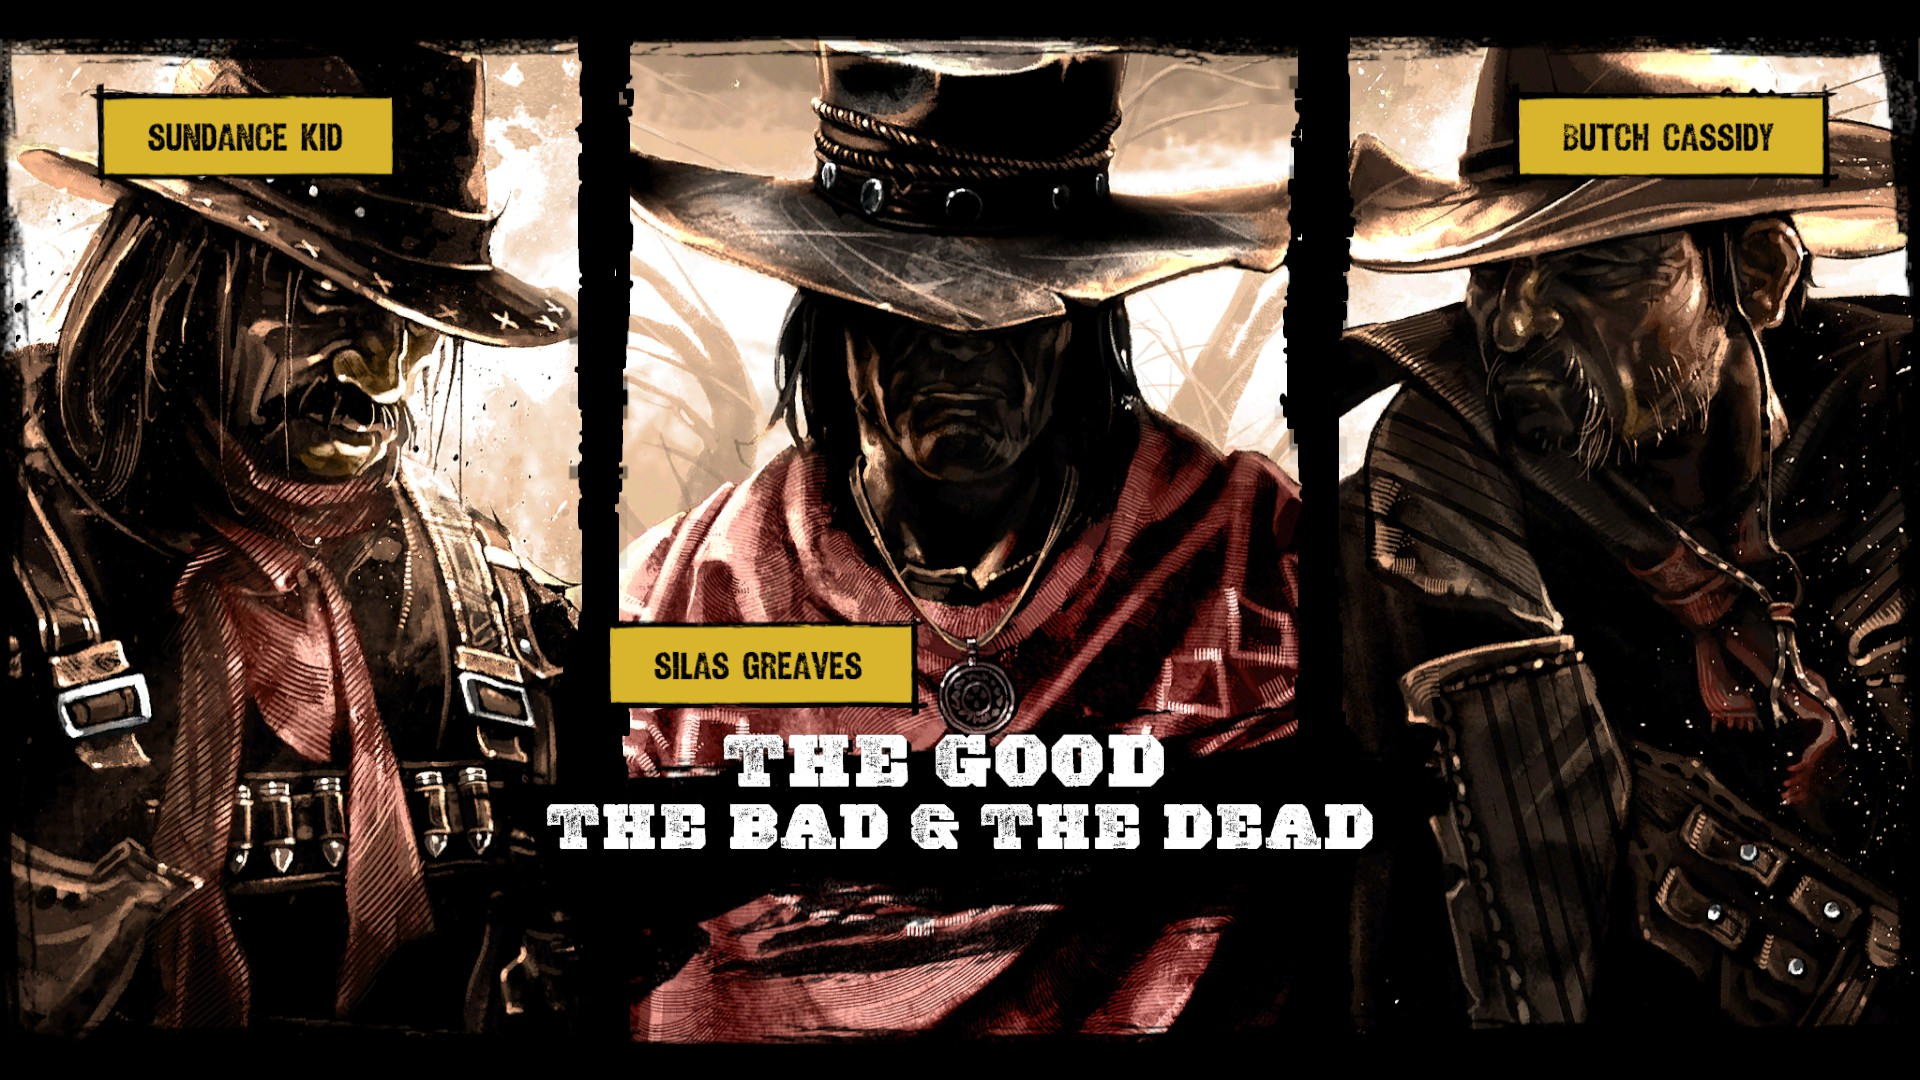 The comic book style is unique for this…I'm sorry, but is this  Butch Cassidy and the Sundance Kid  AND  The Good, The Bad, and the Ugly ?!